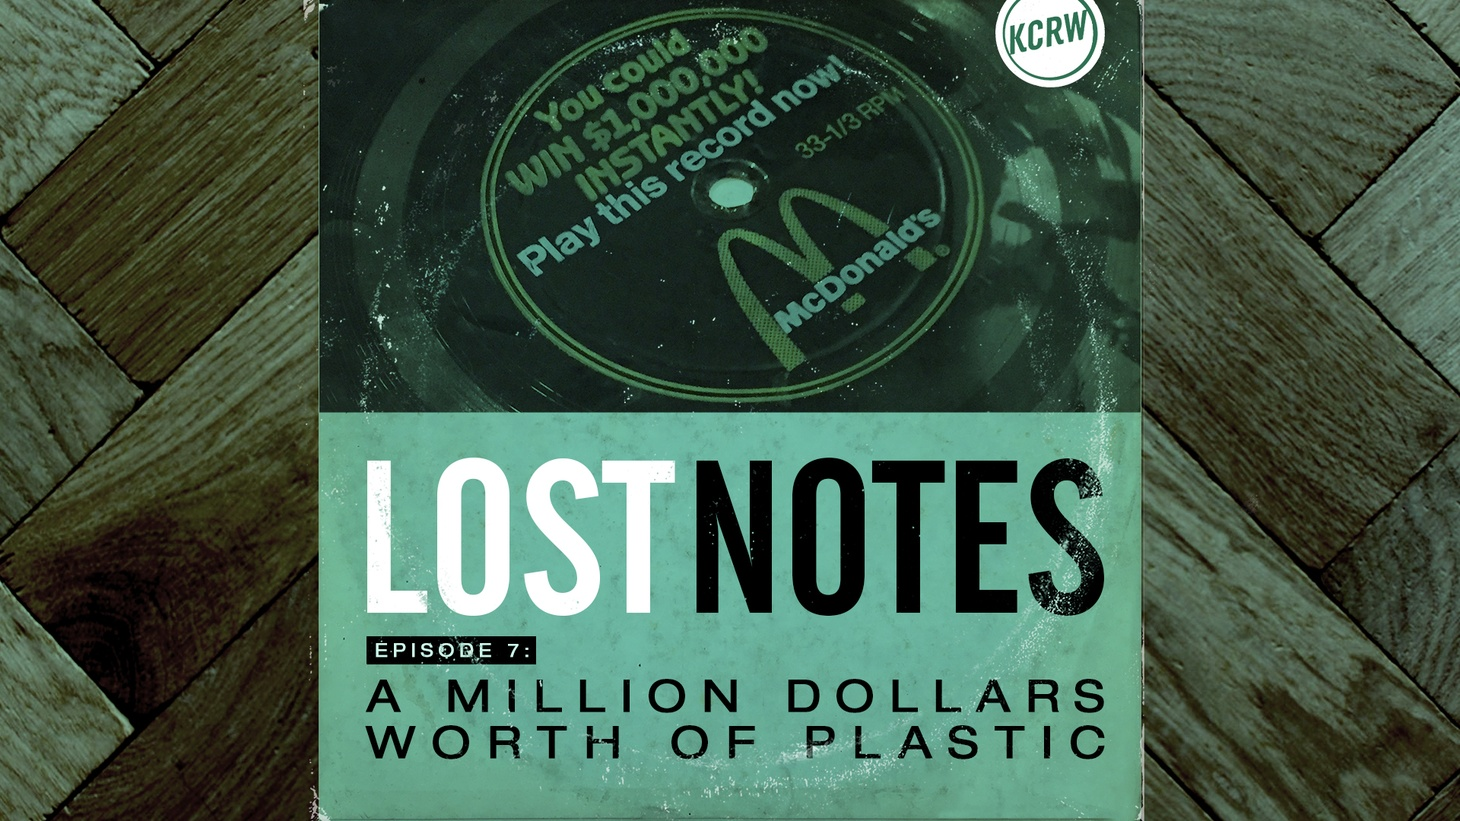 A Million Dollars Worth of Plastic | Lost Notes | KCRW